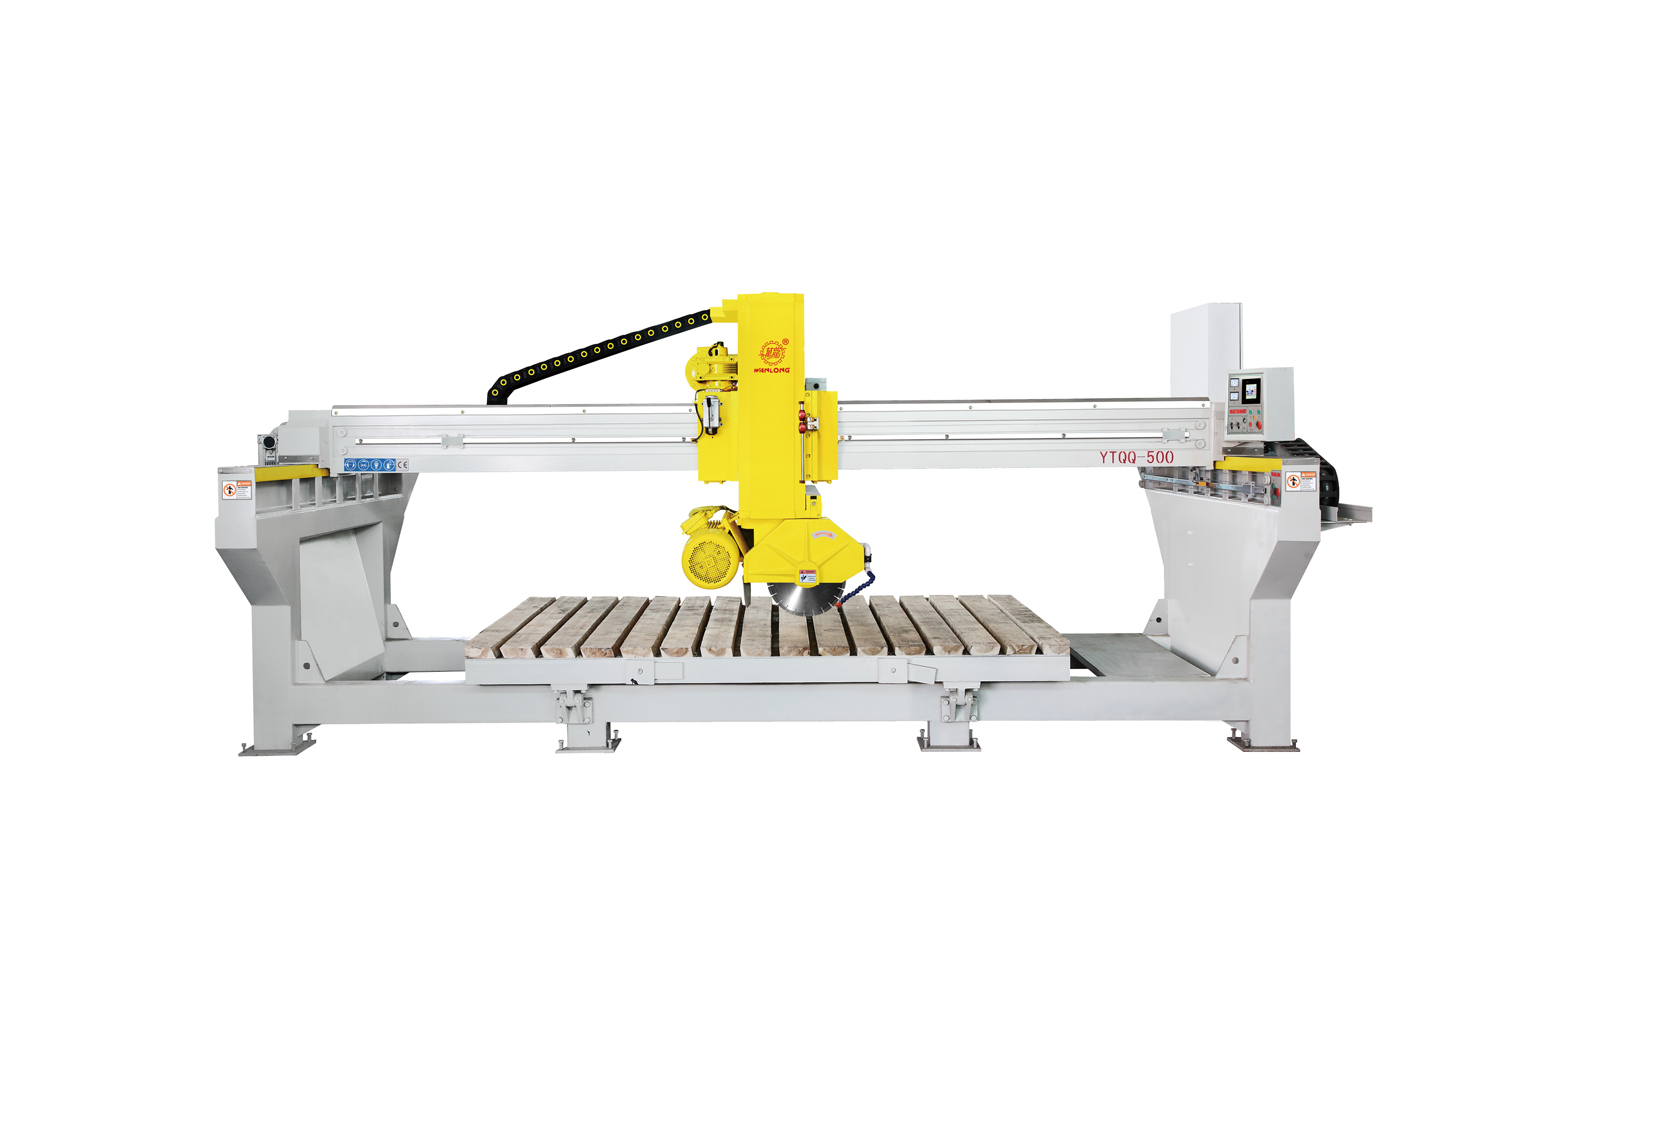 YTQQ-500 Mono-block Bridge Cutting Machine